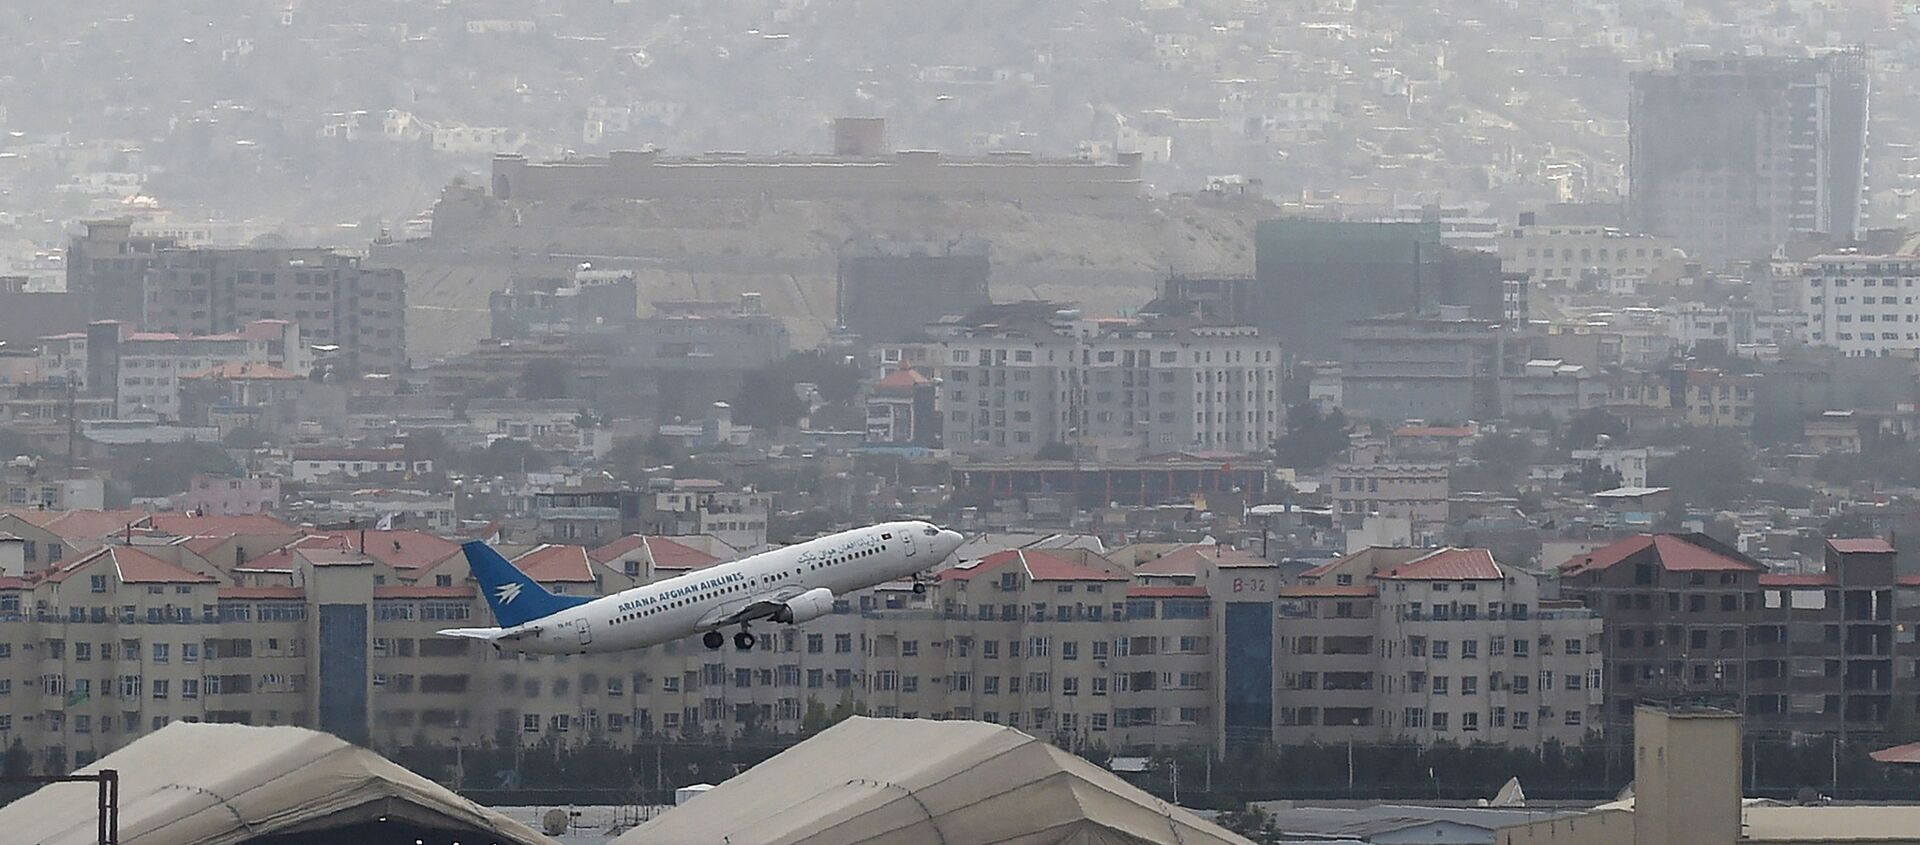 This picture taken on August 14, 2021 shows an Ariana Afghan Airlines aircraft taking-off from the airport in Kabul. - Sputnik International, 1920